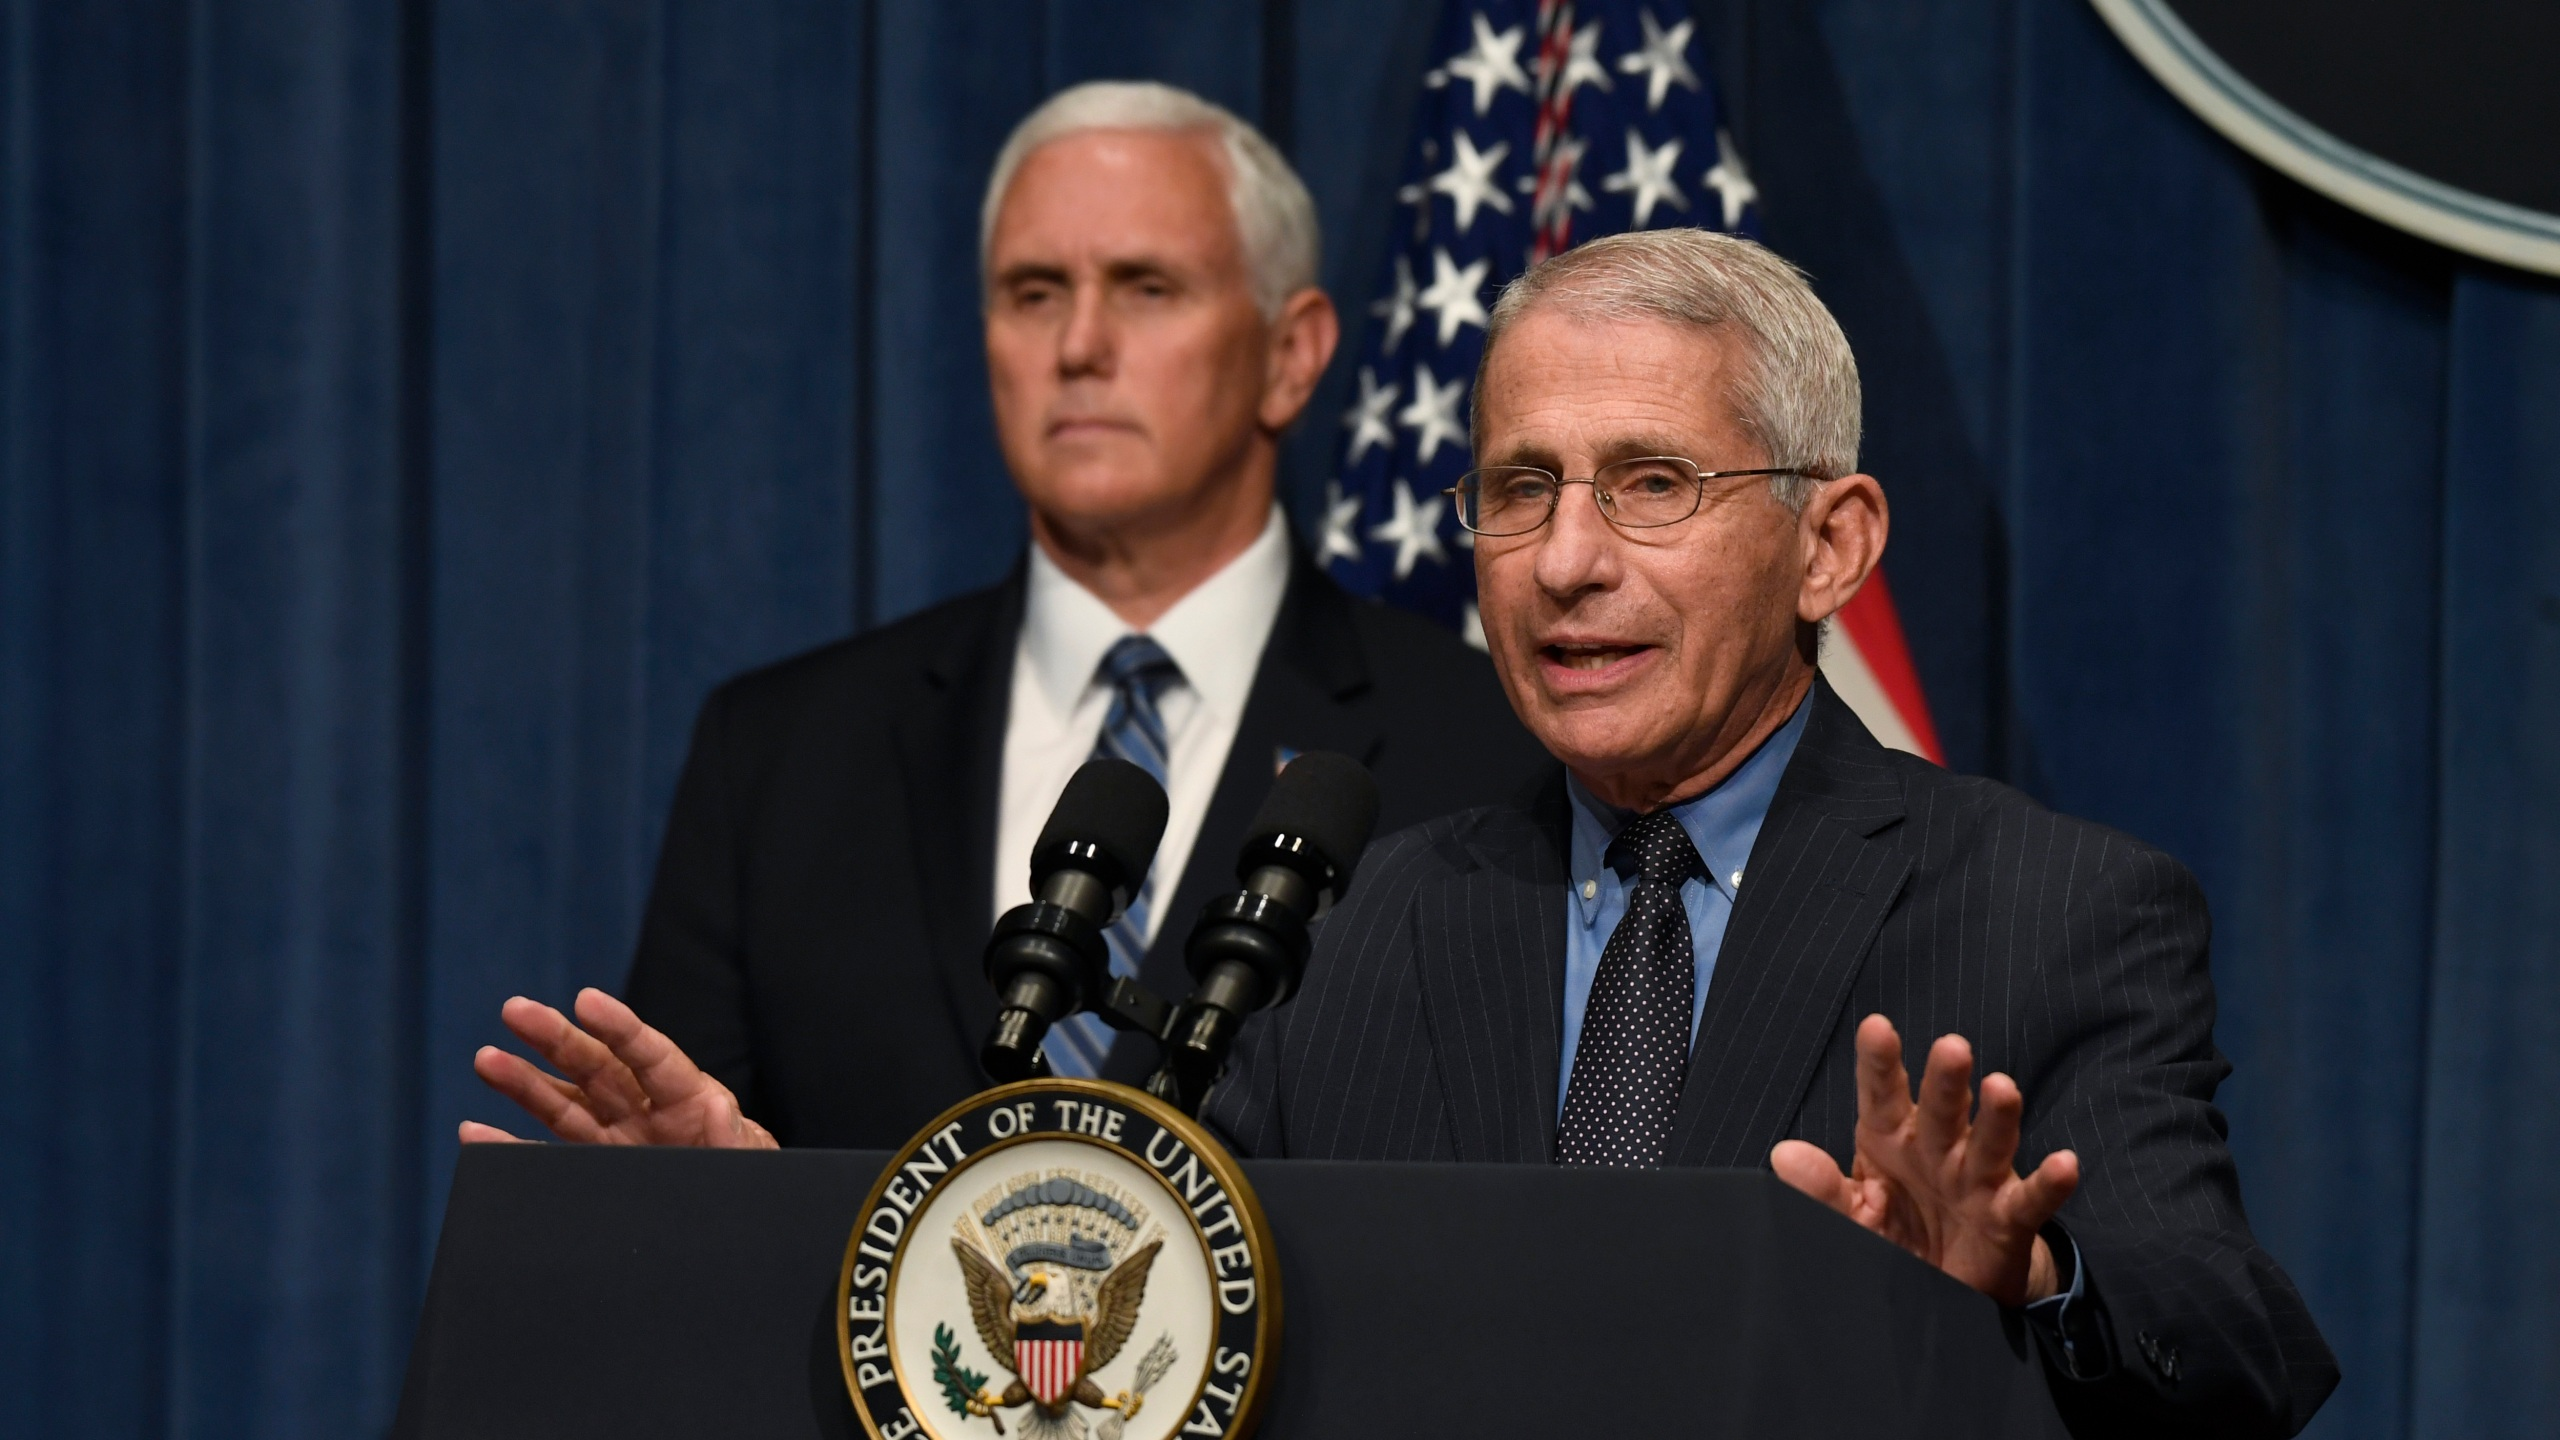 Anthony Fauci, Mike Pence